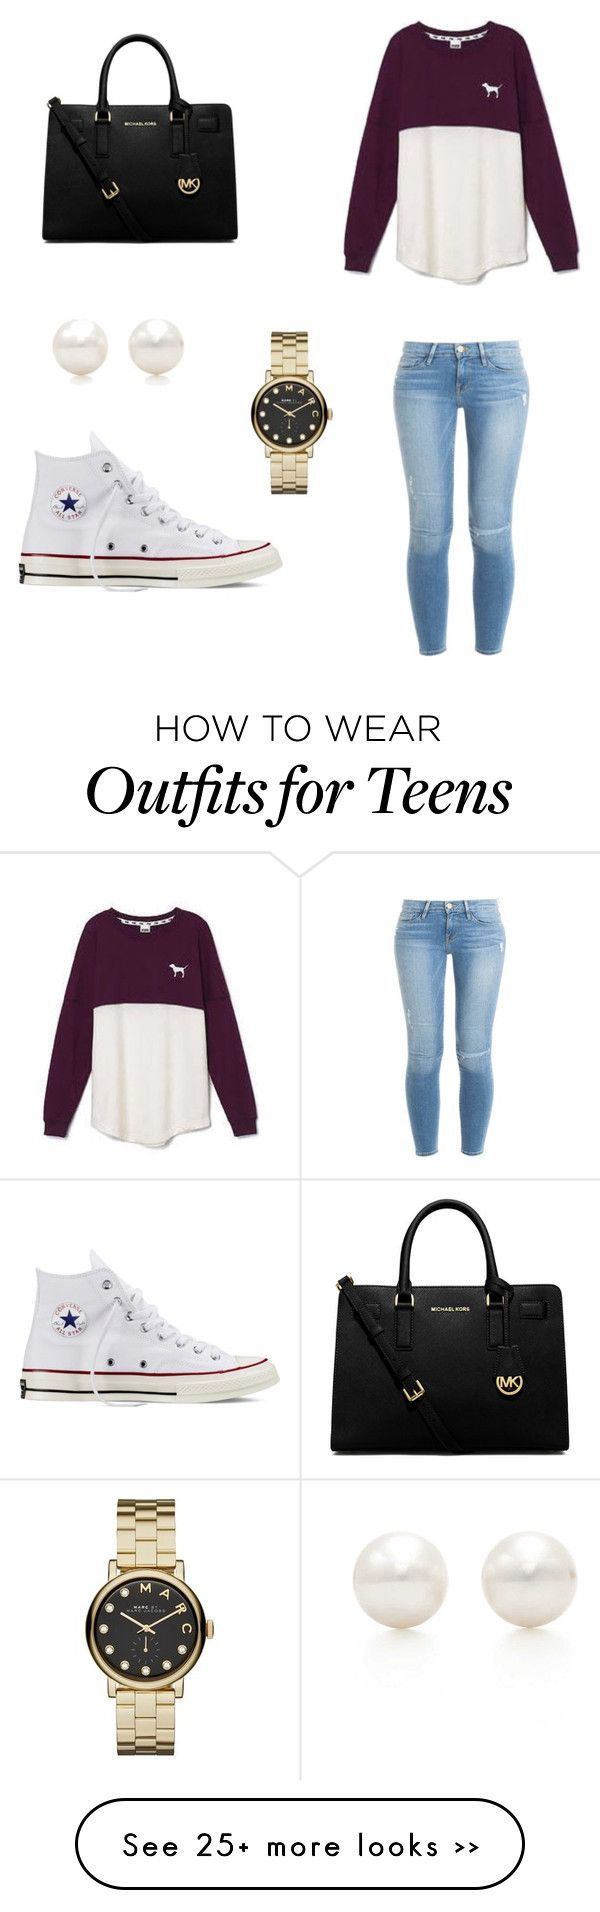 """Outfit for teens"" by garzapaola on Polyvore featuring Victoria's Secret, Frame Denim, Converse, MICHAEL Michael Kors, Marc by Marc Jacobs and Tiffany & Co."